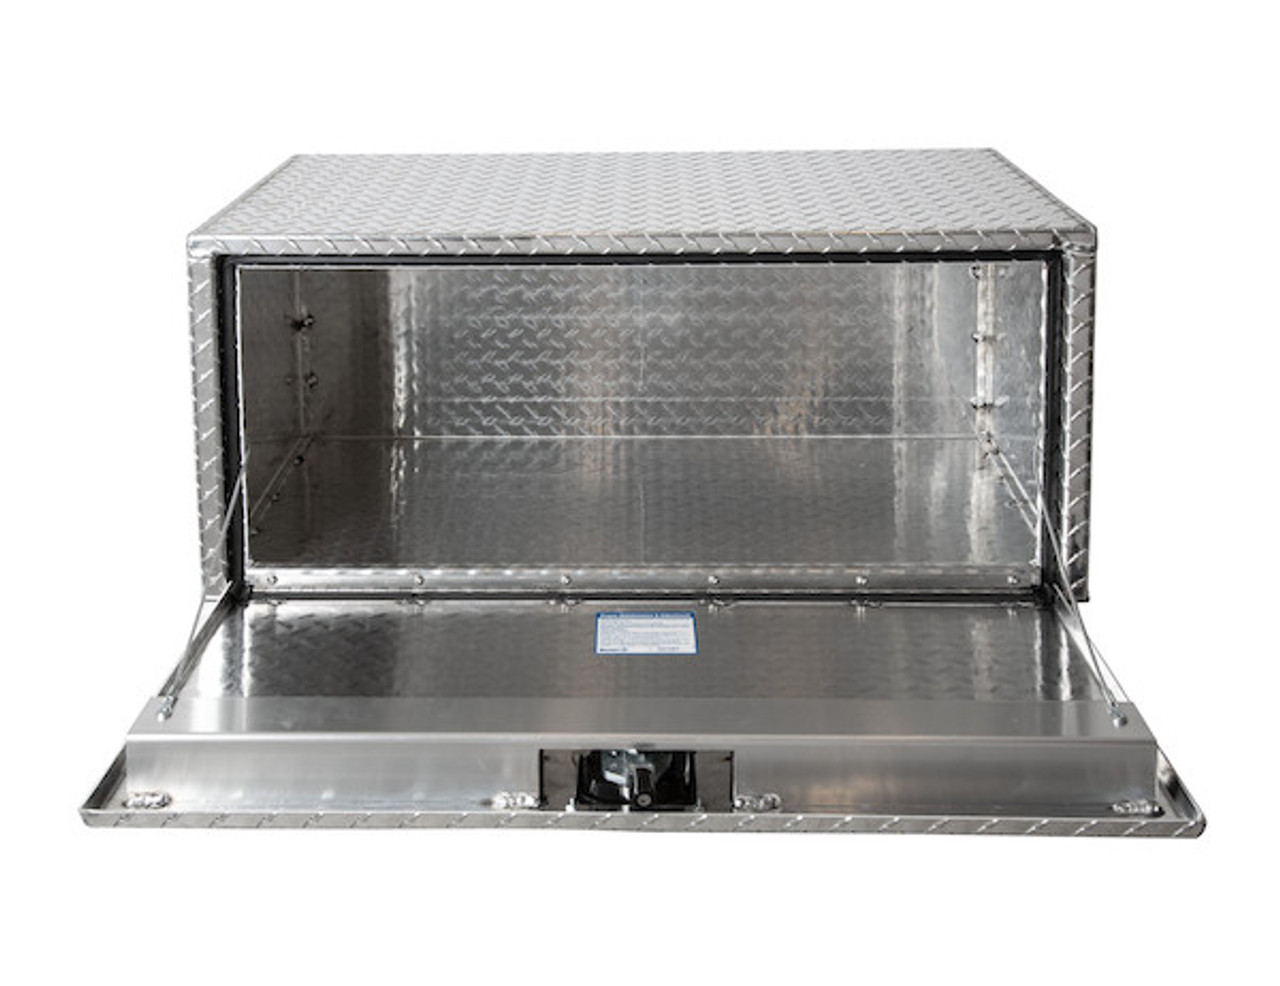 "1705130 BUYERS PRODUCTS DIAMOND TREAD ALUMINUM UNDERBODY TRUCK TOOLBOX 24""HX24""DX24""W"